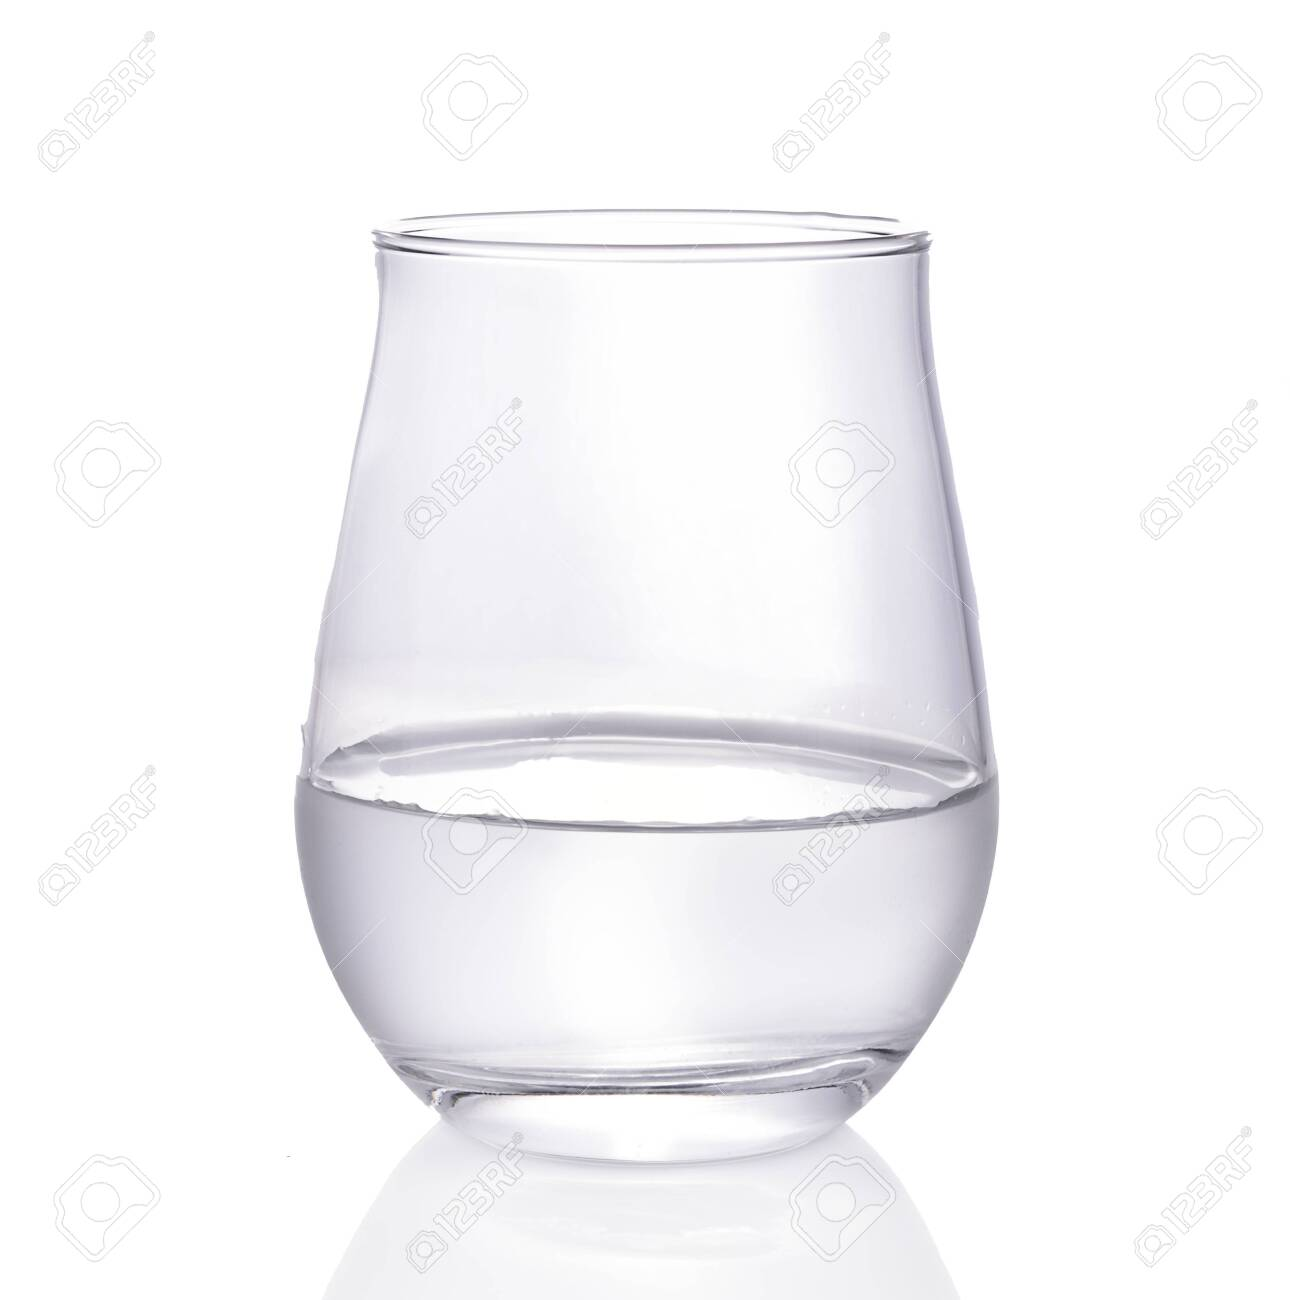 glass of water isolated on white background. - 145466051